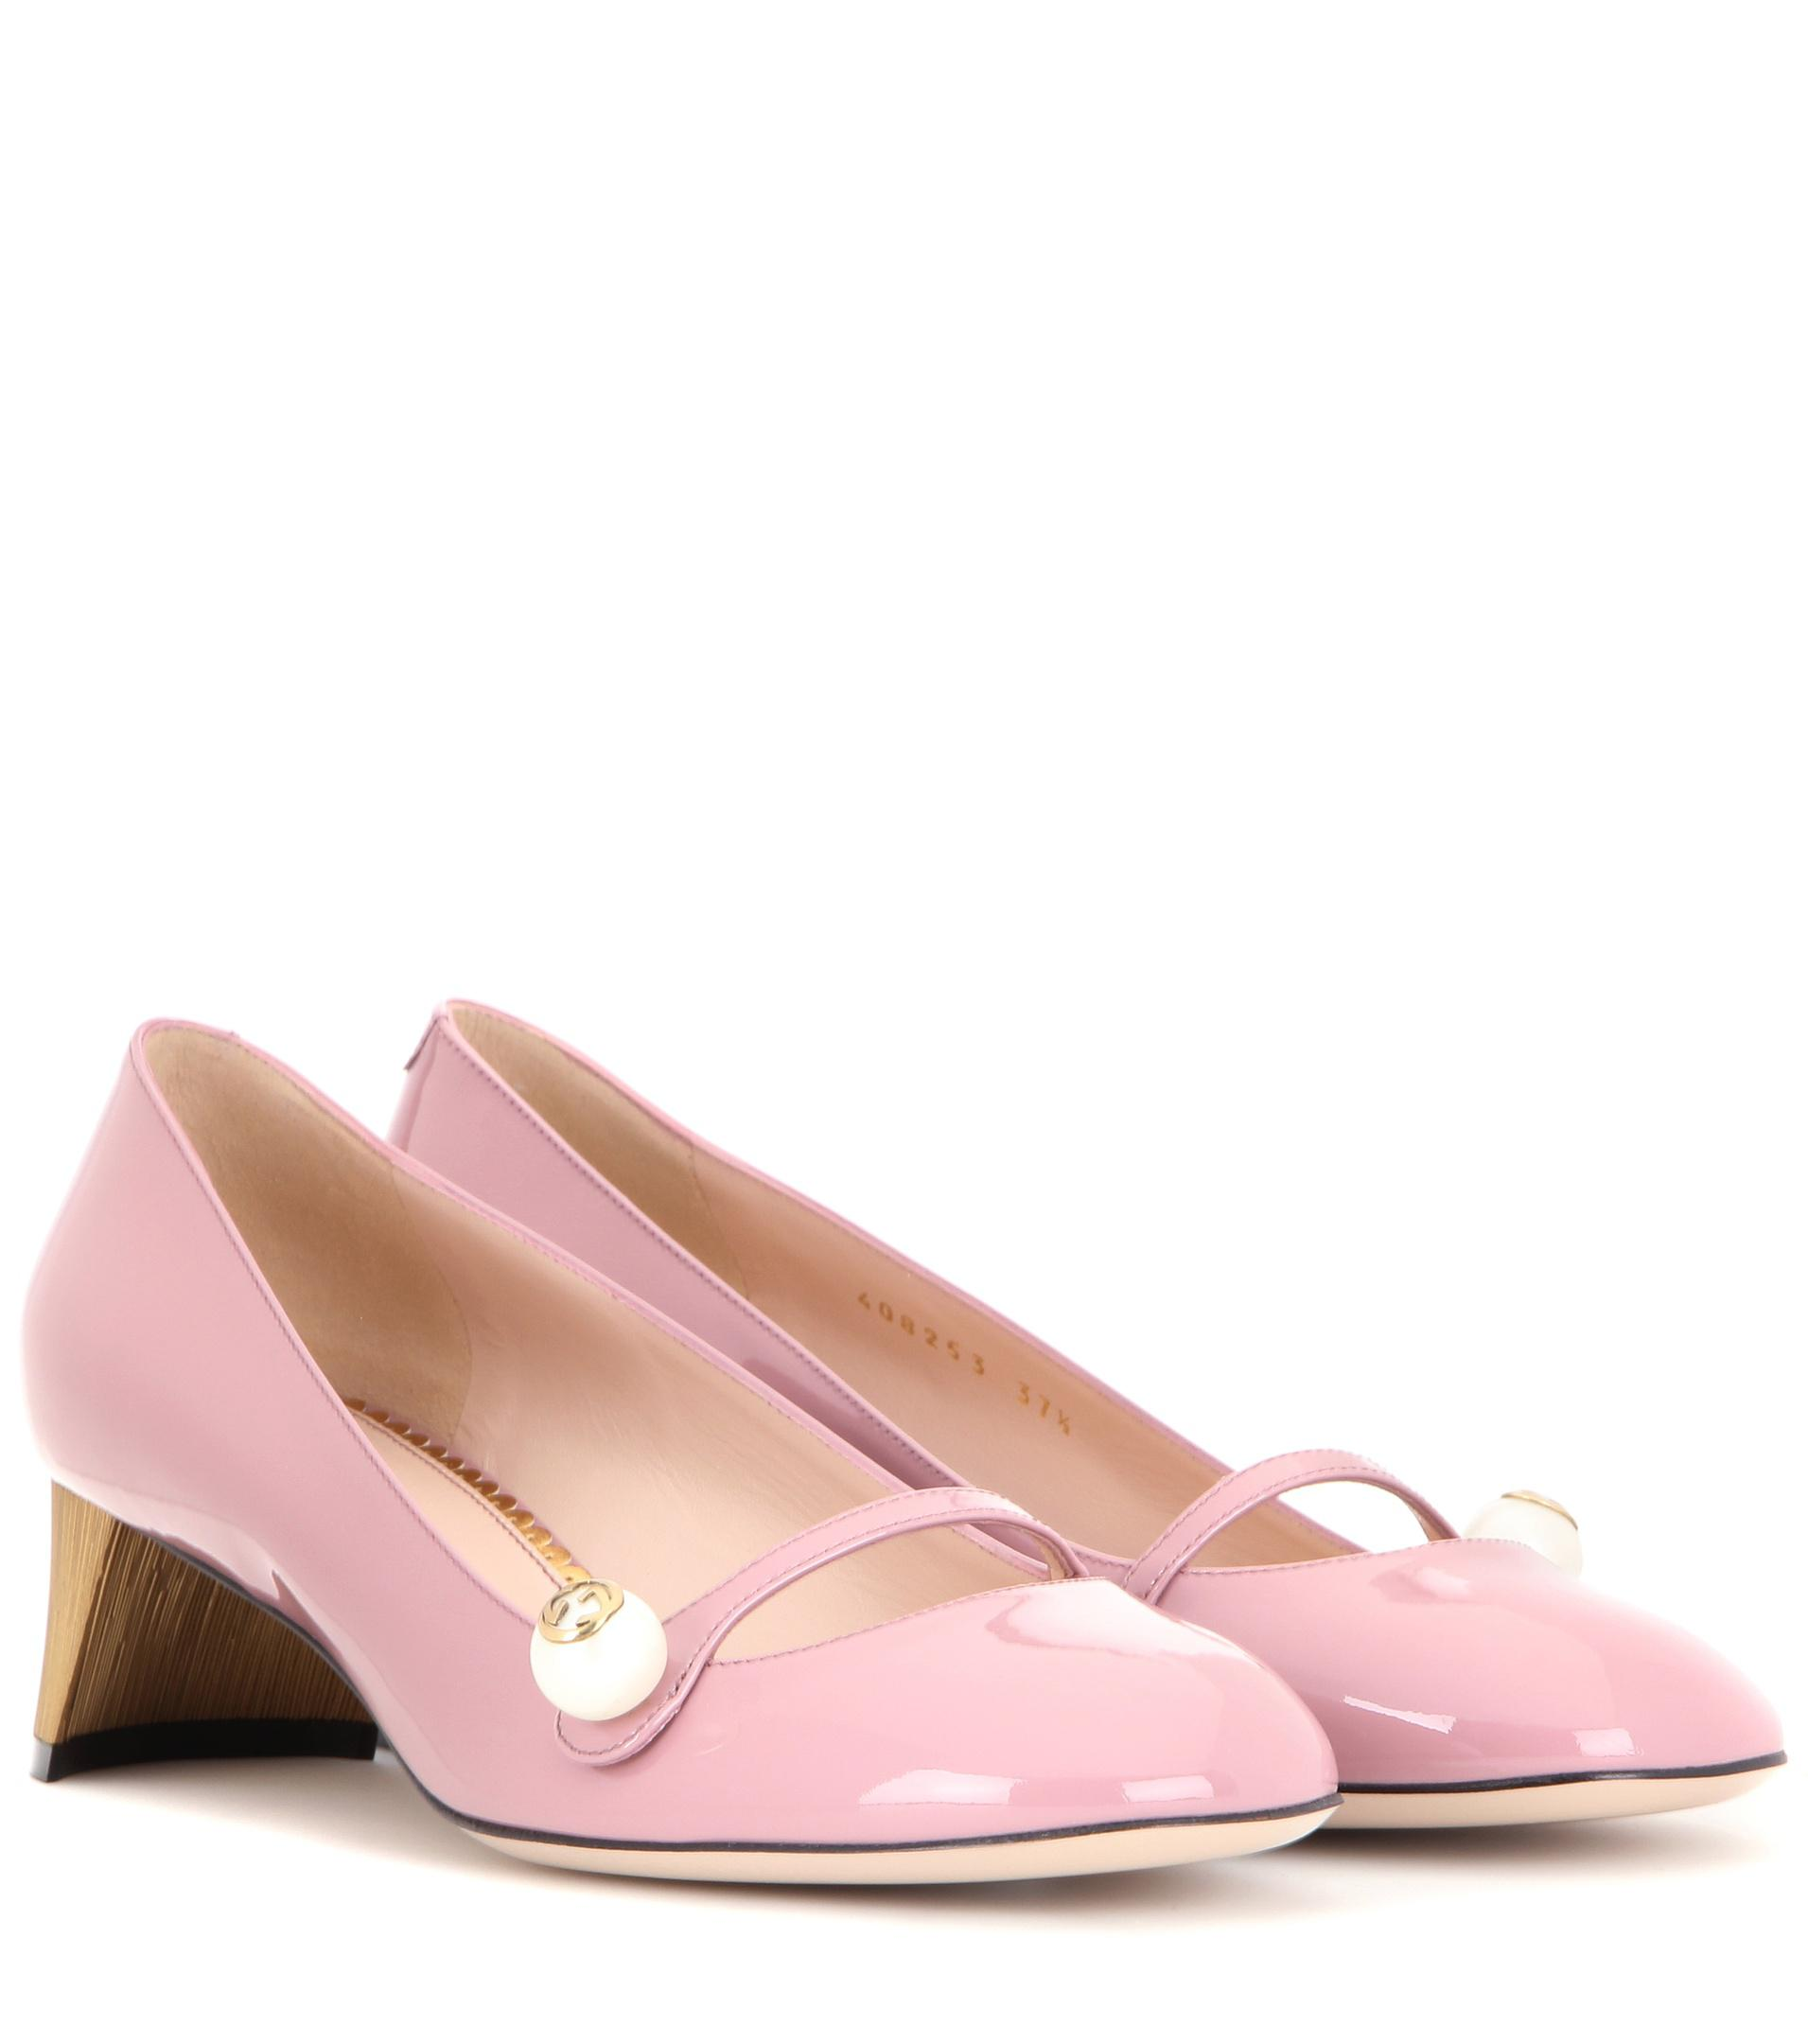 b43f904afe2e Lyst - Gucci Arielle Embellished Patent Leather Pumps in Pink